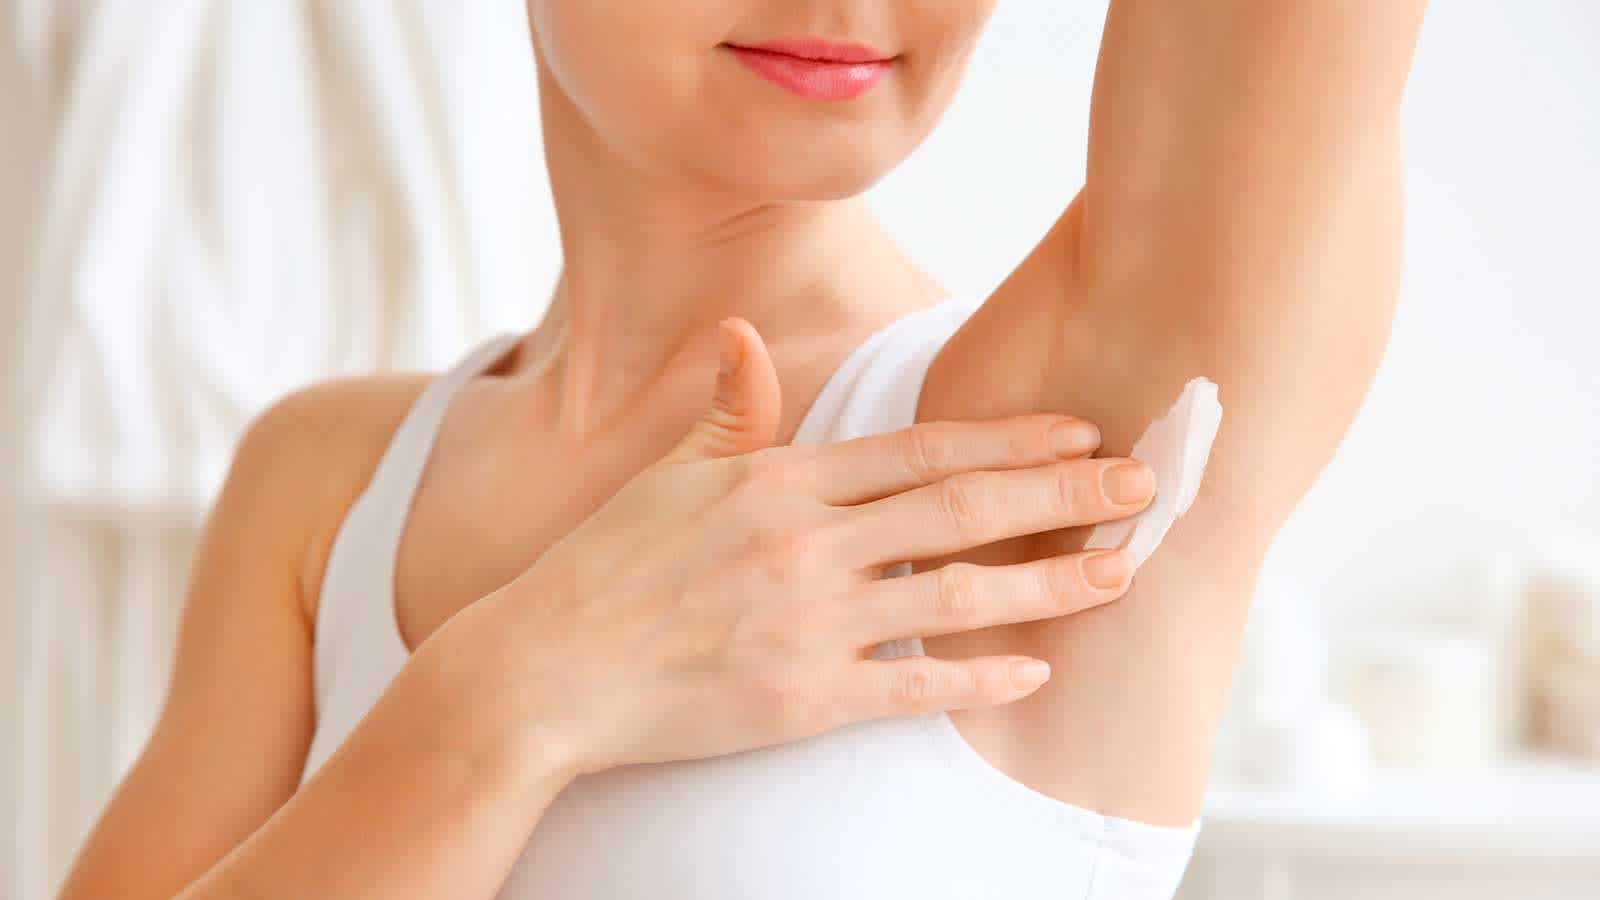 Woman Moisturizing Her Armpit After Shaving